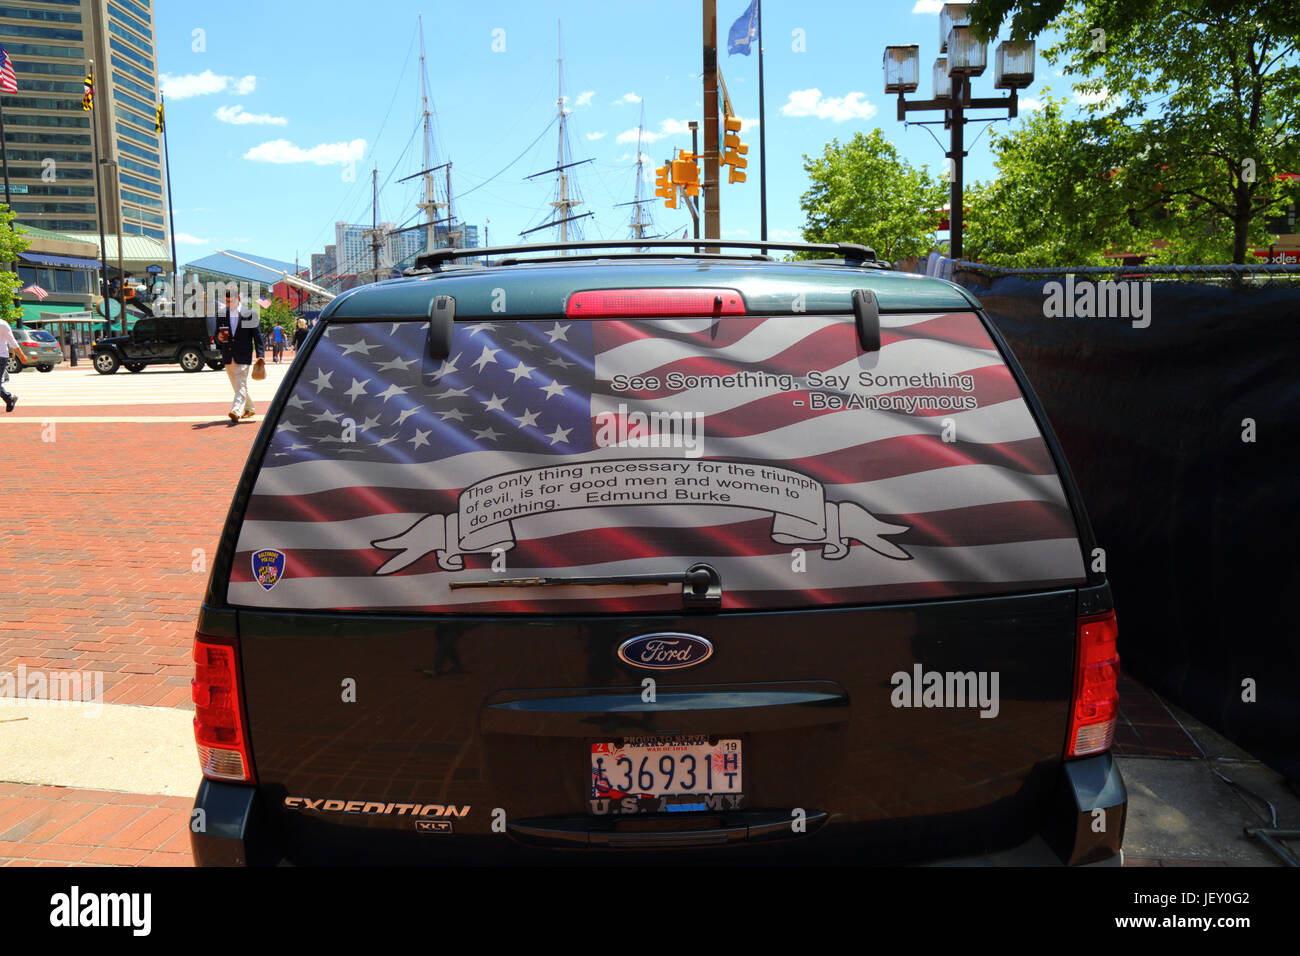 See Something say Something slogan, Edmund Burke quotation and American flag on rear window of Ford Expedition SUV, - Stock Image